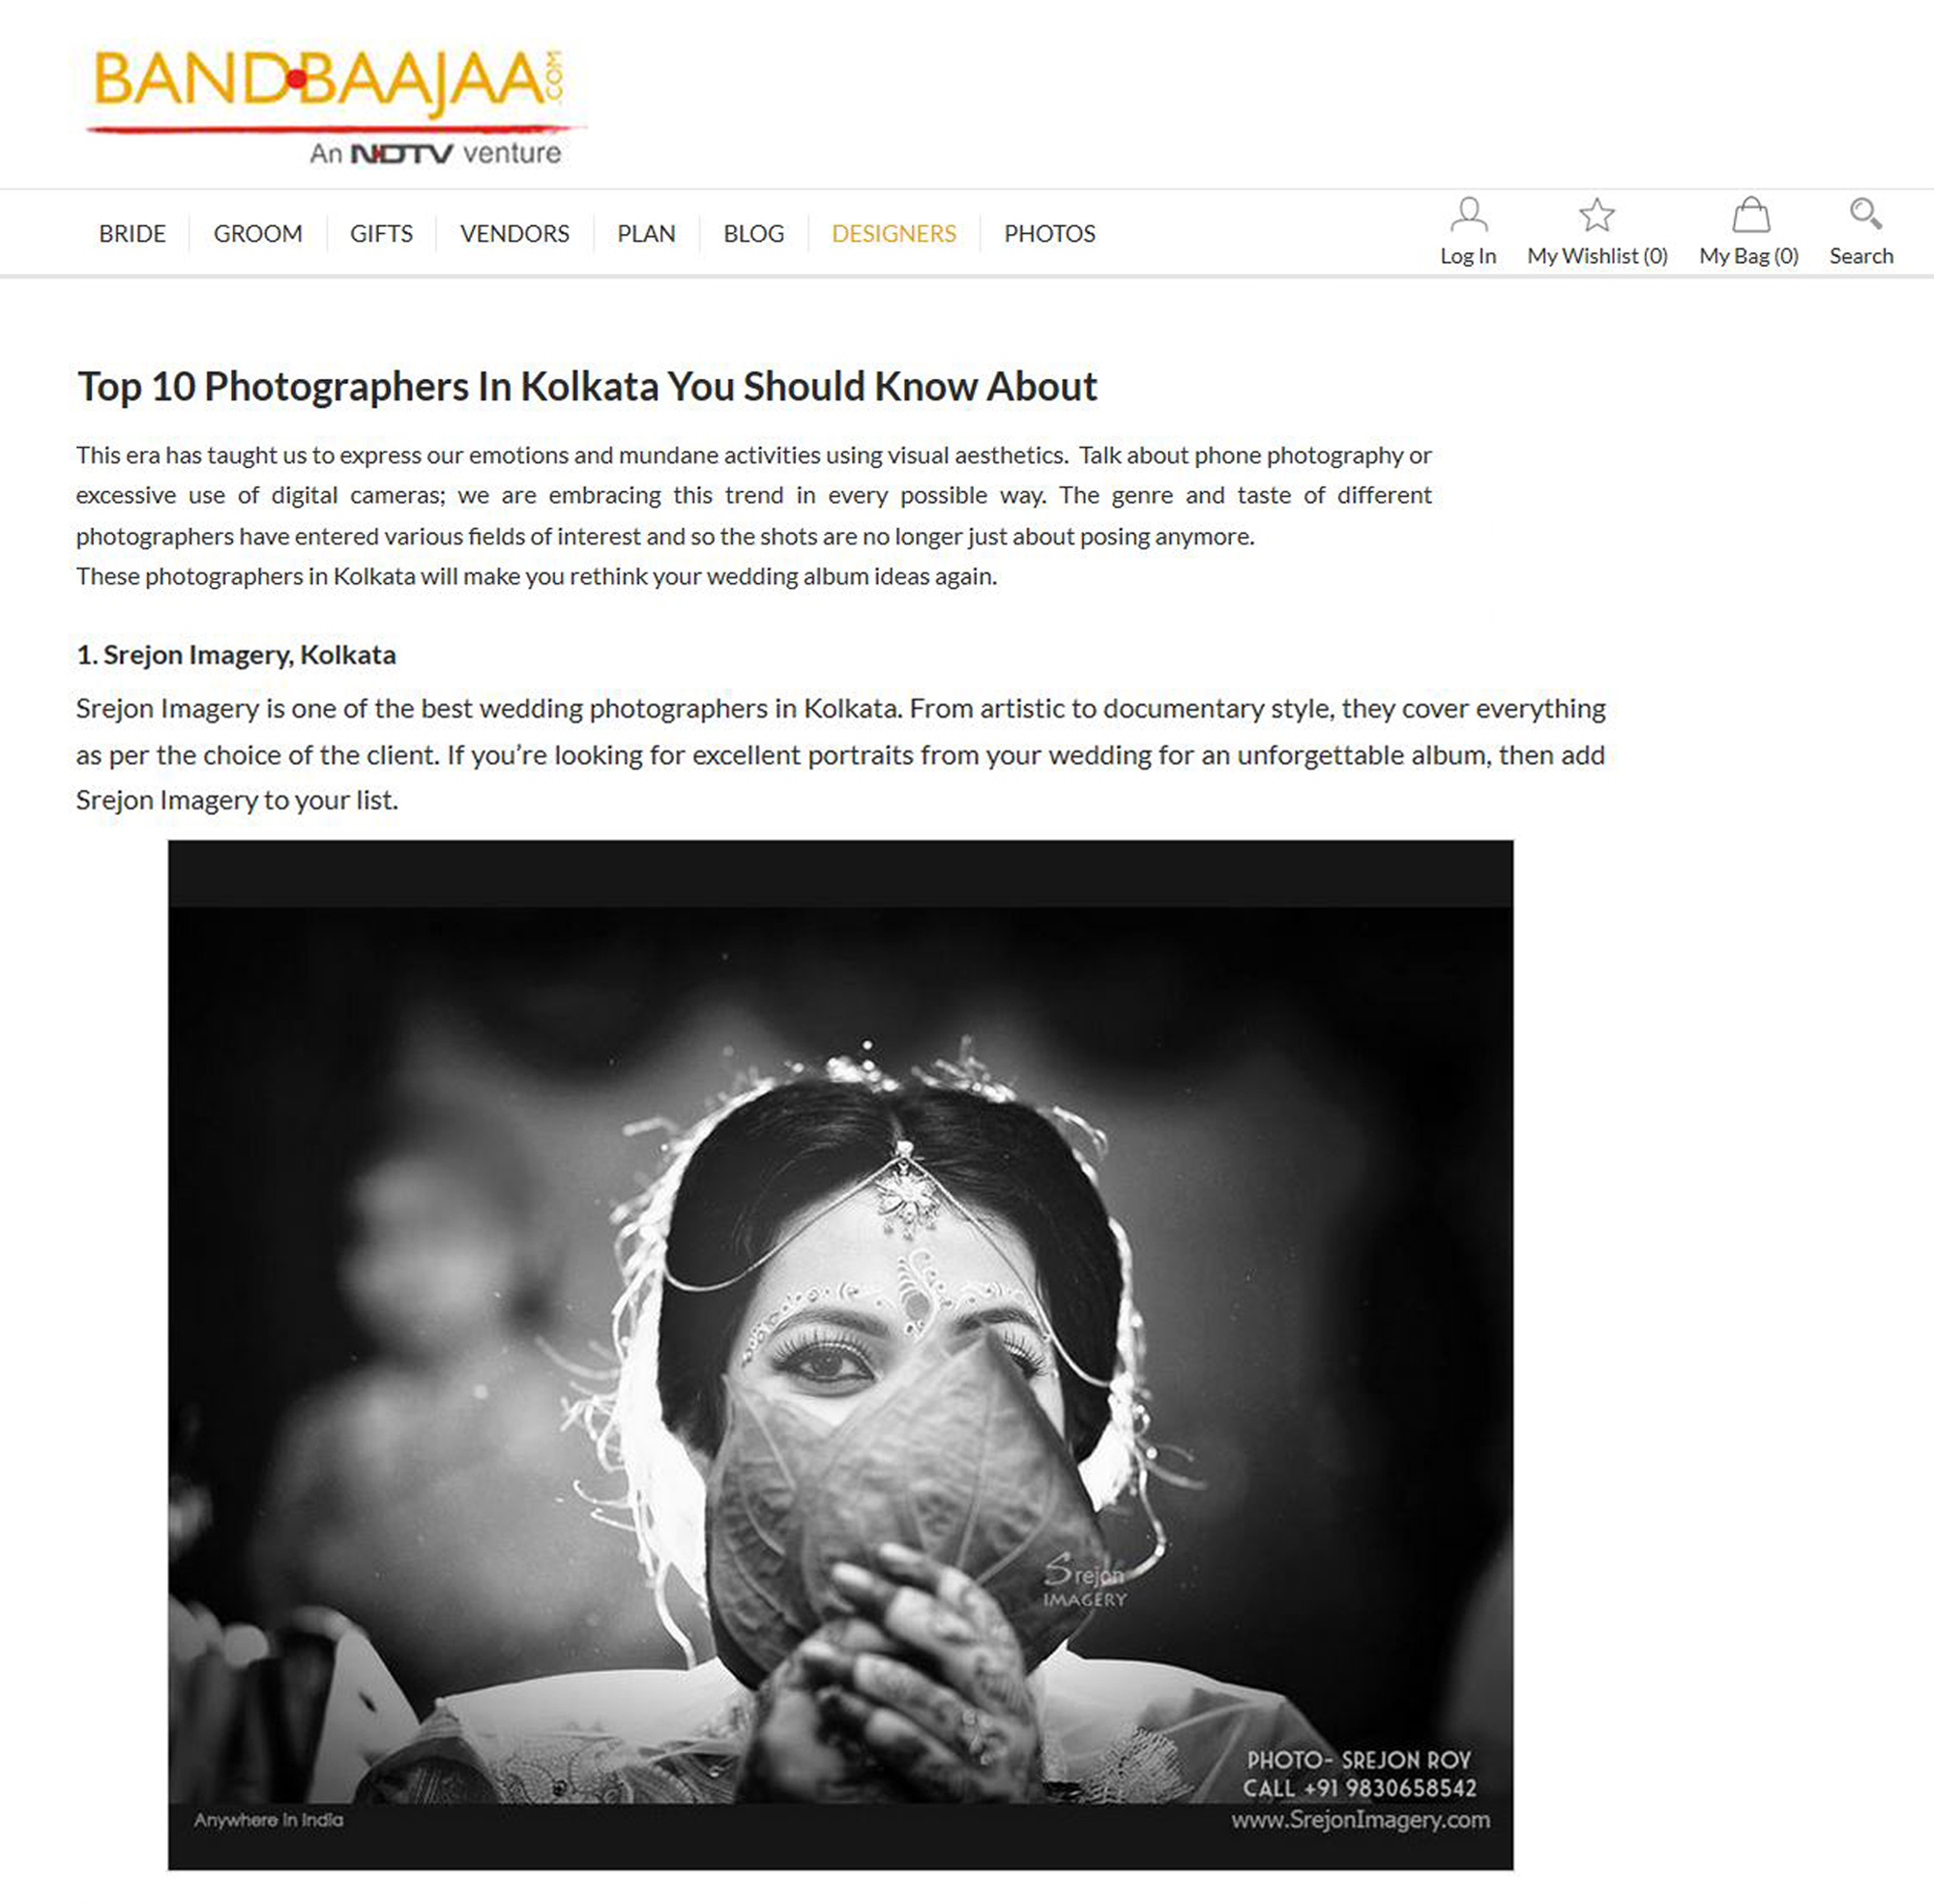 Top Wedding Photographer in Kolkata by NDTV's BandBaajaa